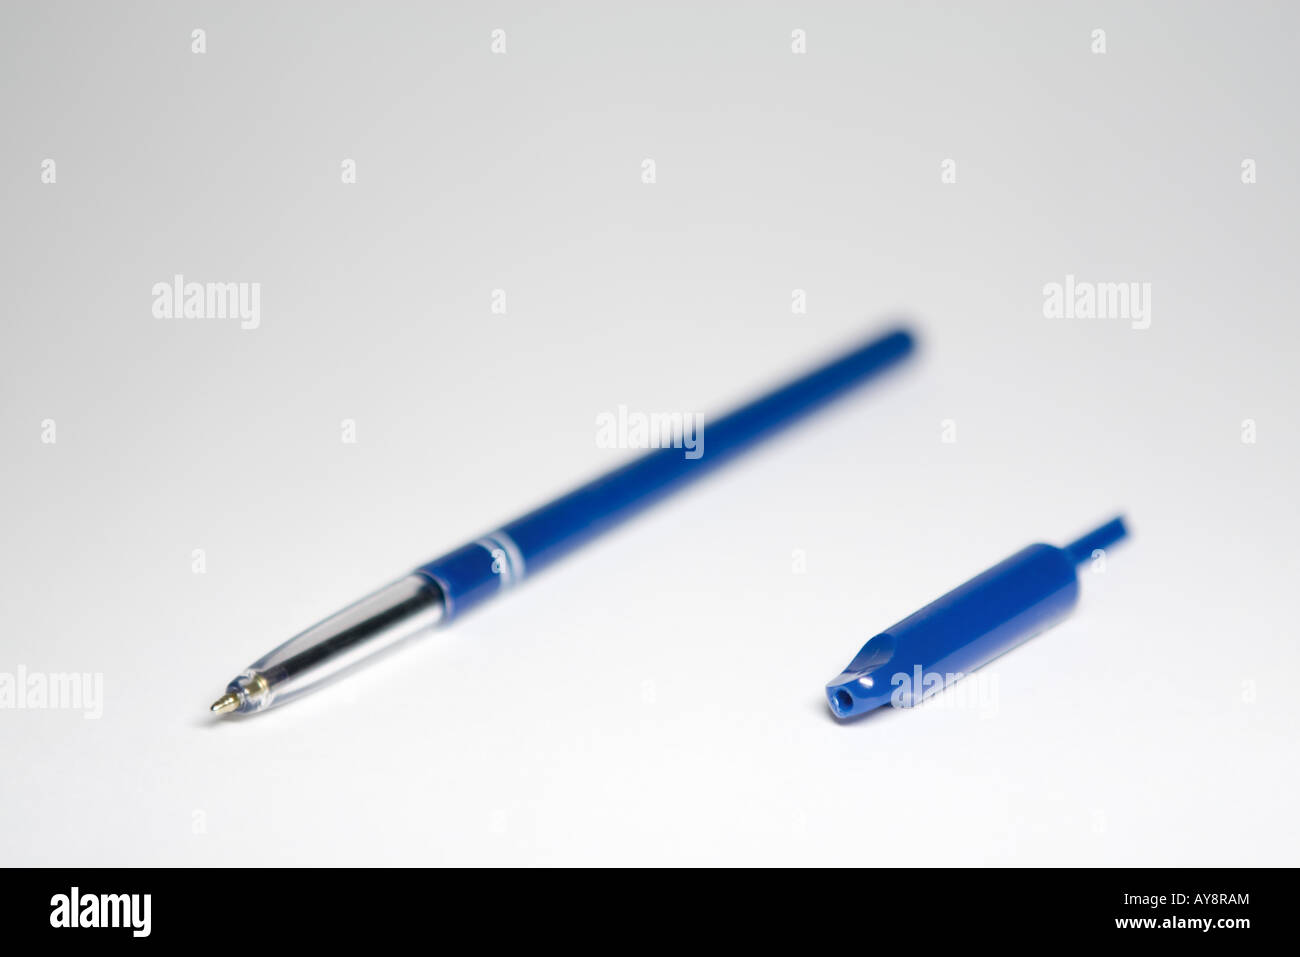 Ballpoint pen with cap removed, close-up - Stock Image